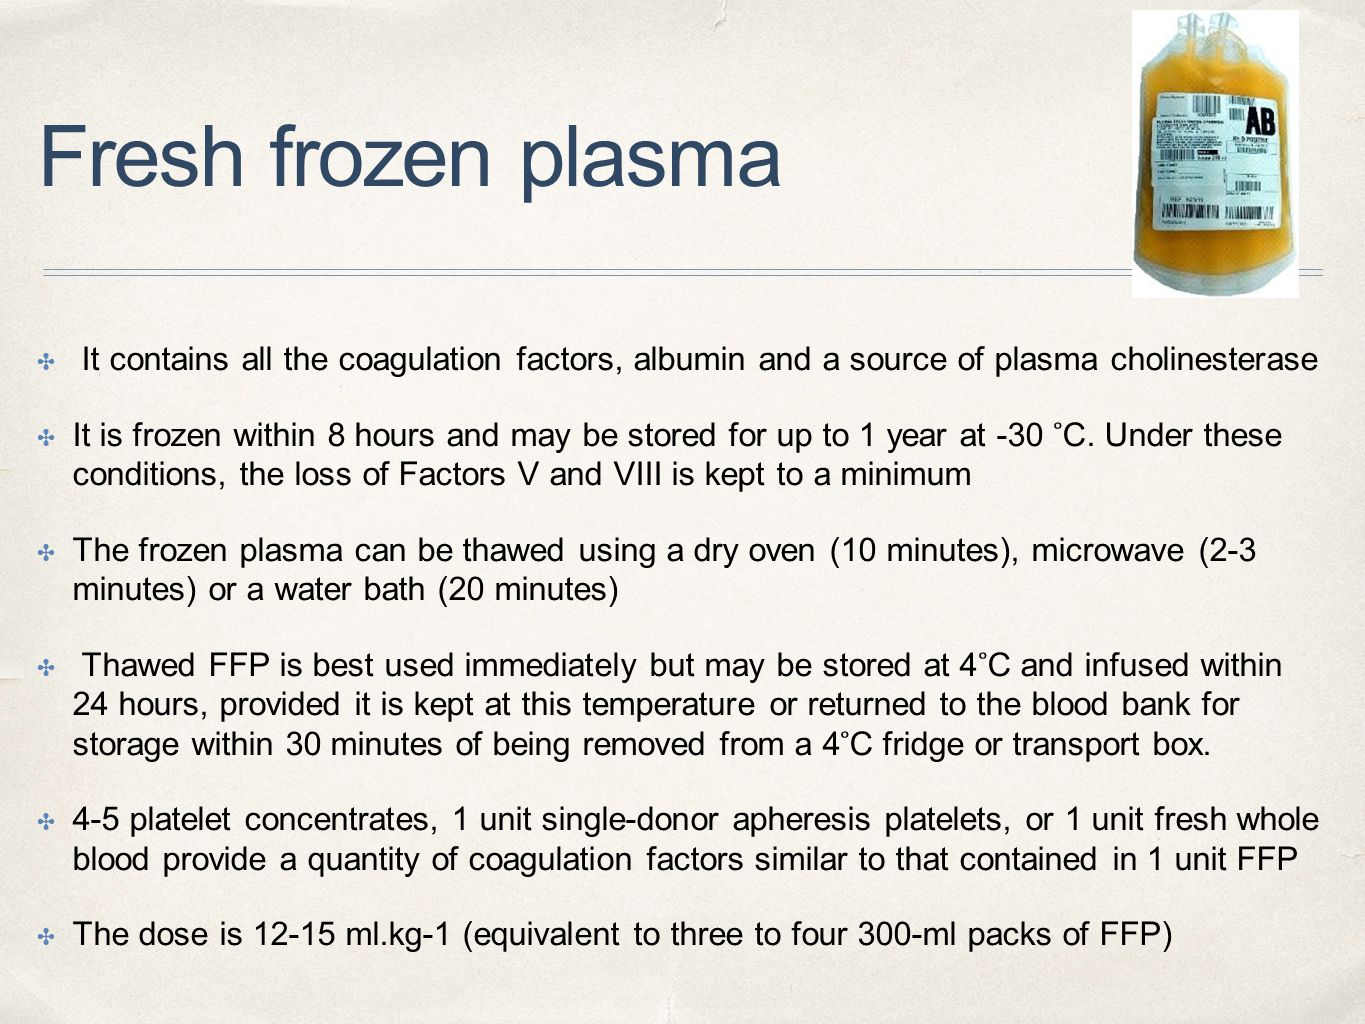 hypertension blood and fresh frozen plasma Ffp fresh frozen plasma 11 principles of clinical transfusion practice 7 check points for signs of deterioration in blood and plasma.